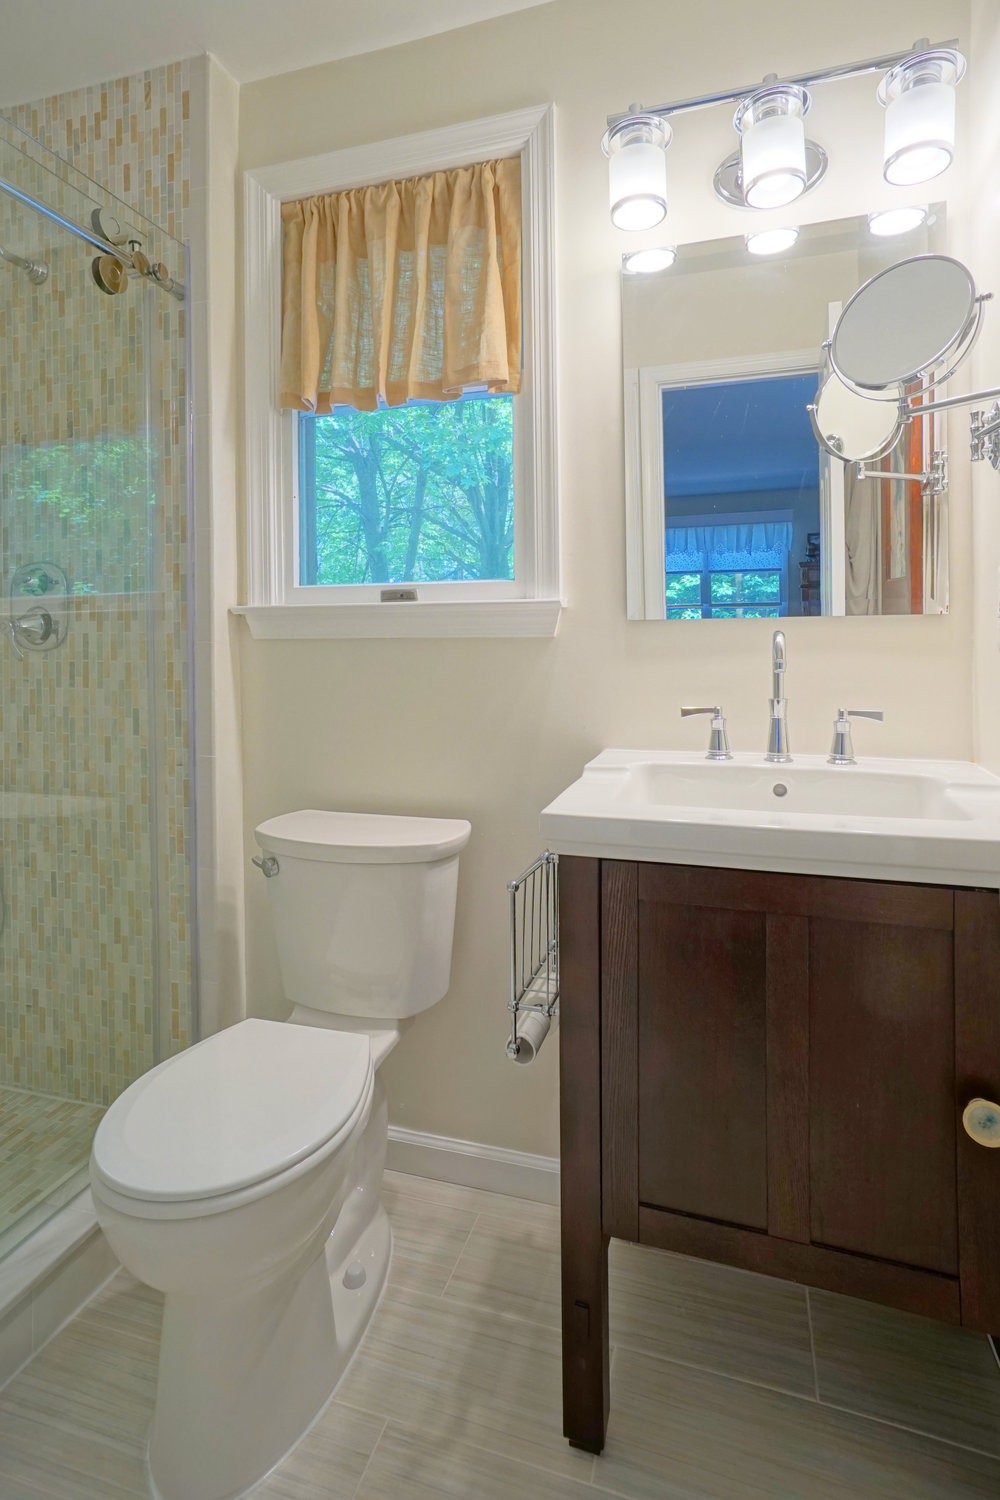 Small bathroom Remodel Elicott City MD1.JPG